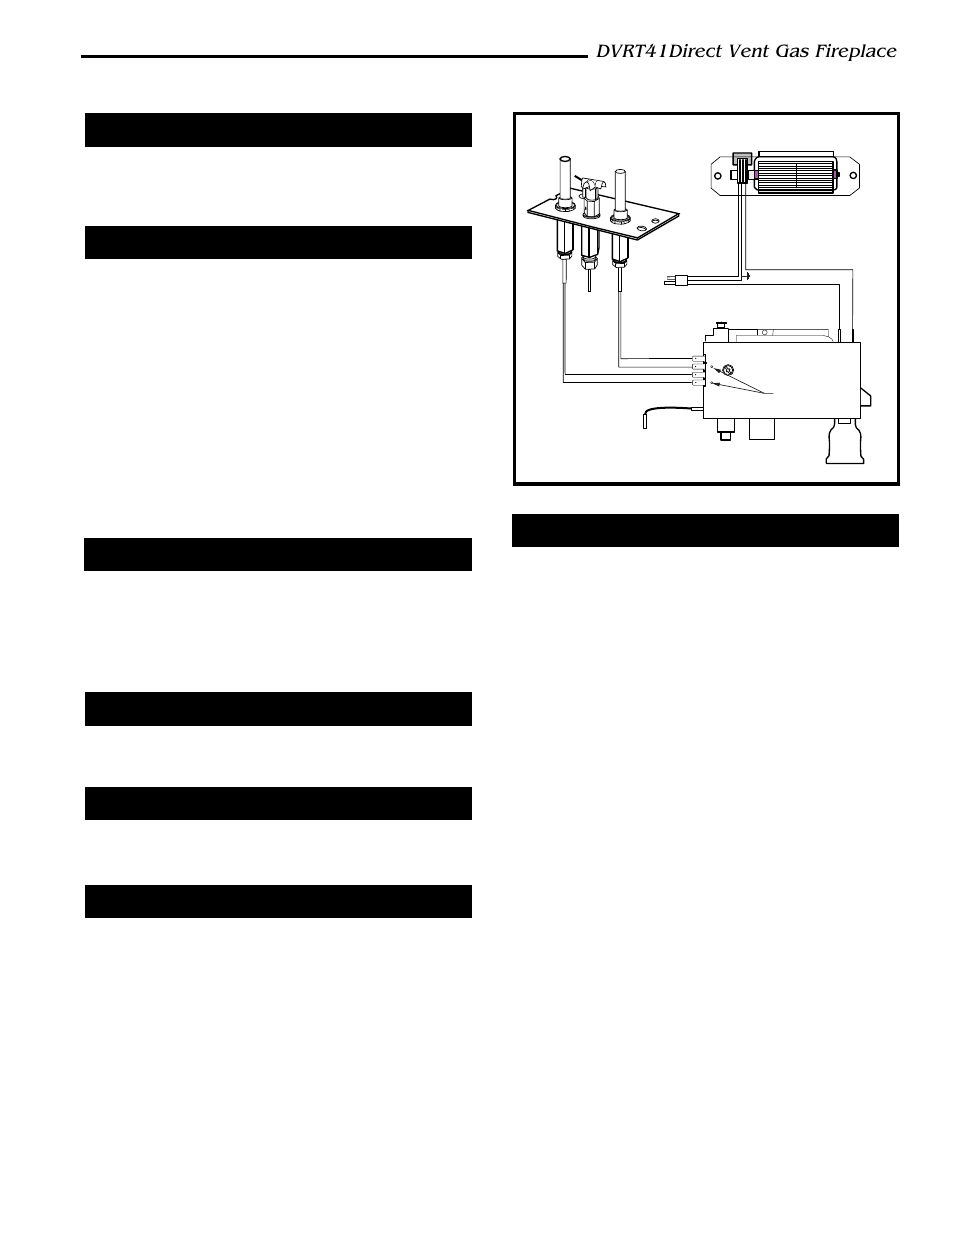 Dvrt41direct Vent Gas Fireplace Delay Timer Mode Auto On Wiring Diagram Fan Override During